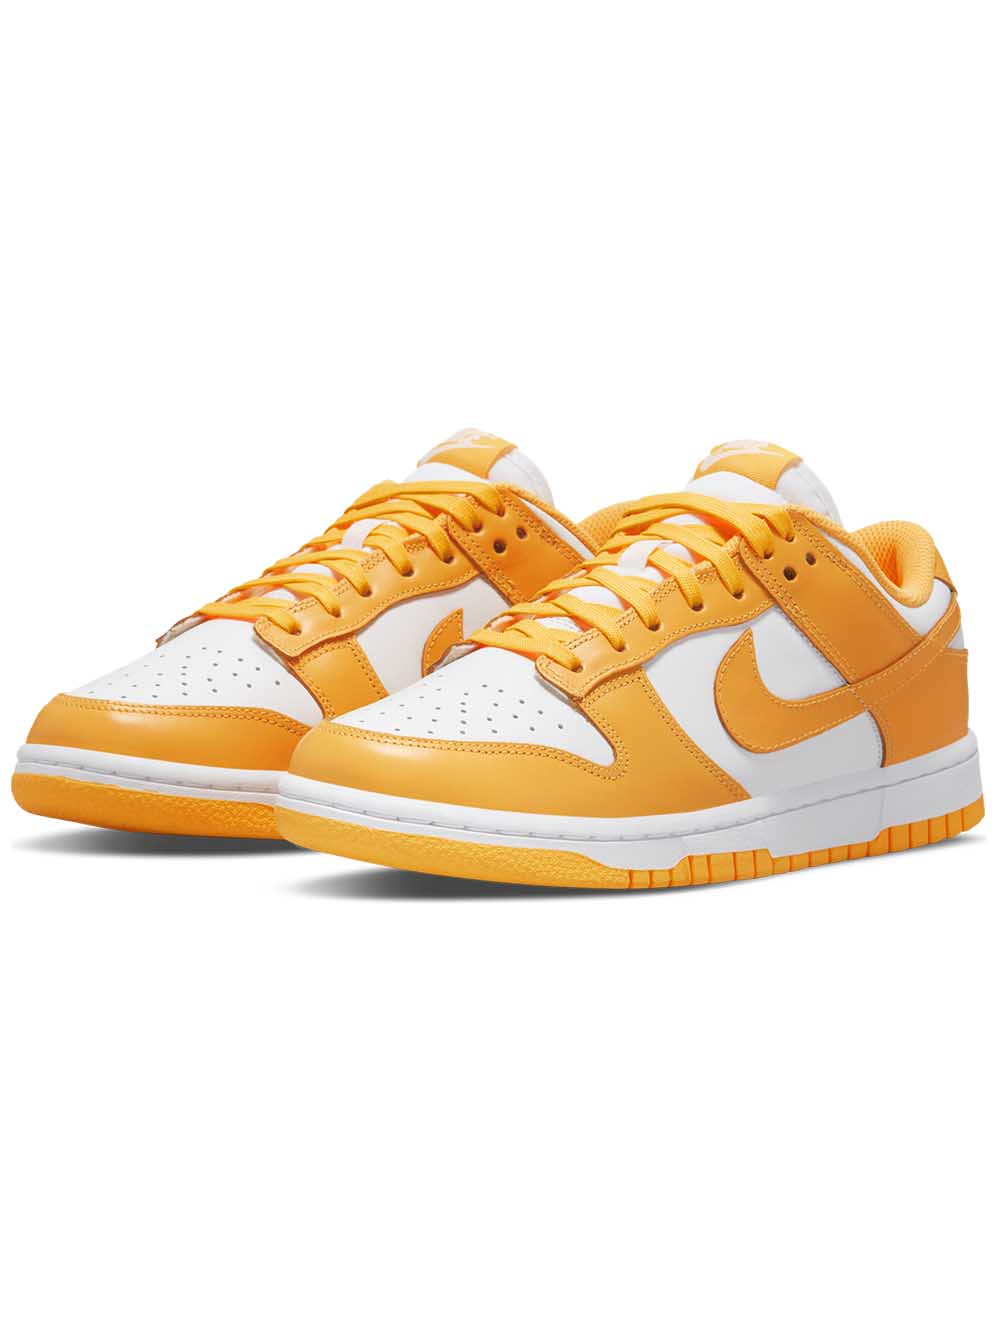 【NIKE】NIKE W DUNK LOW(YEL-22.5)